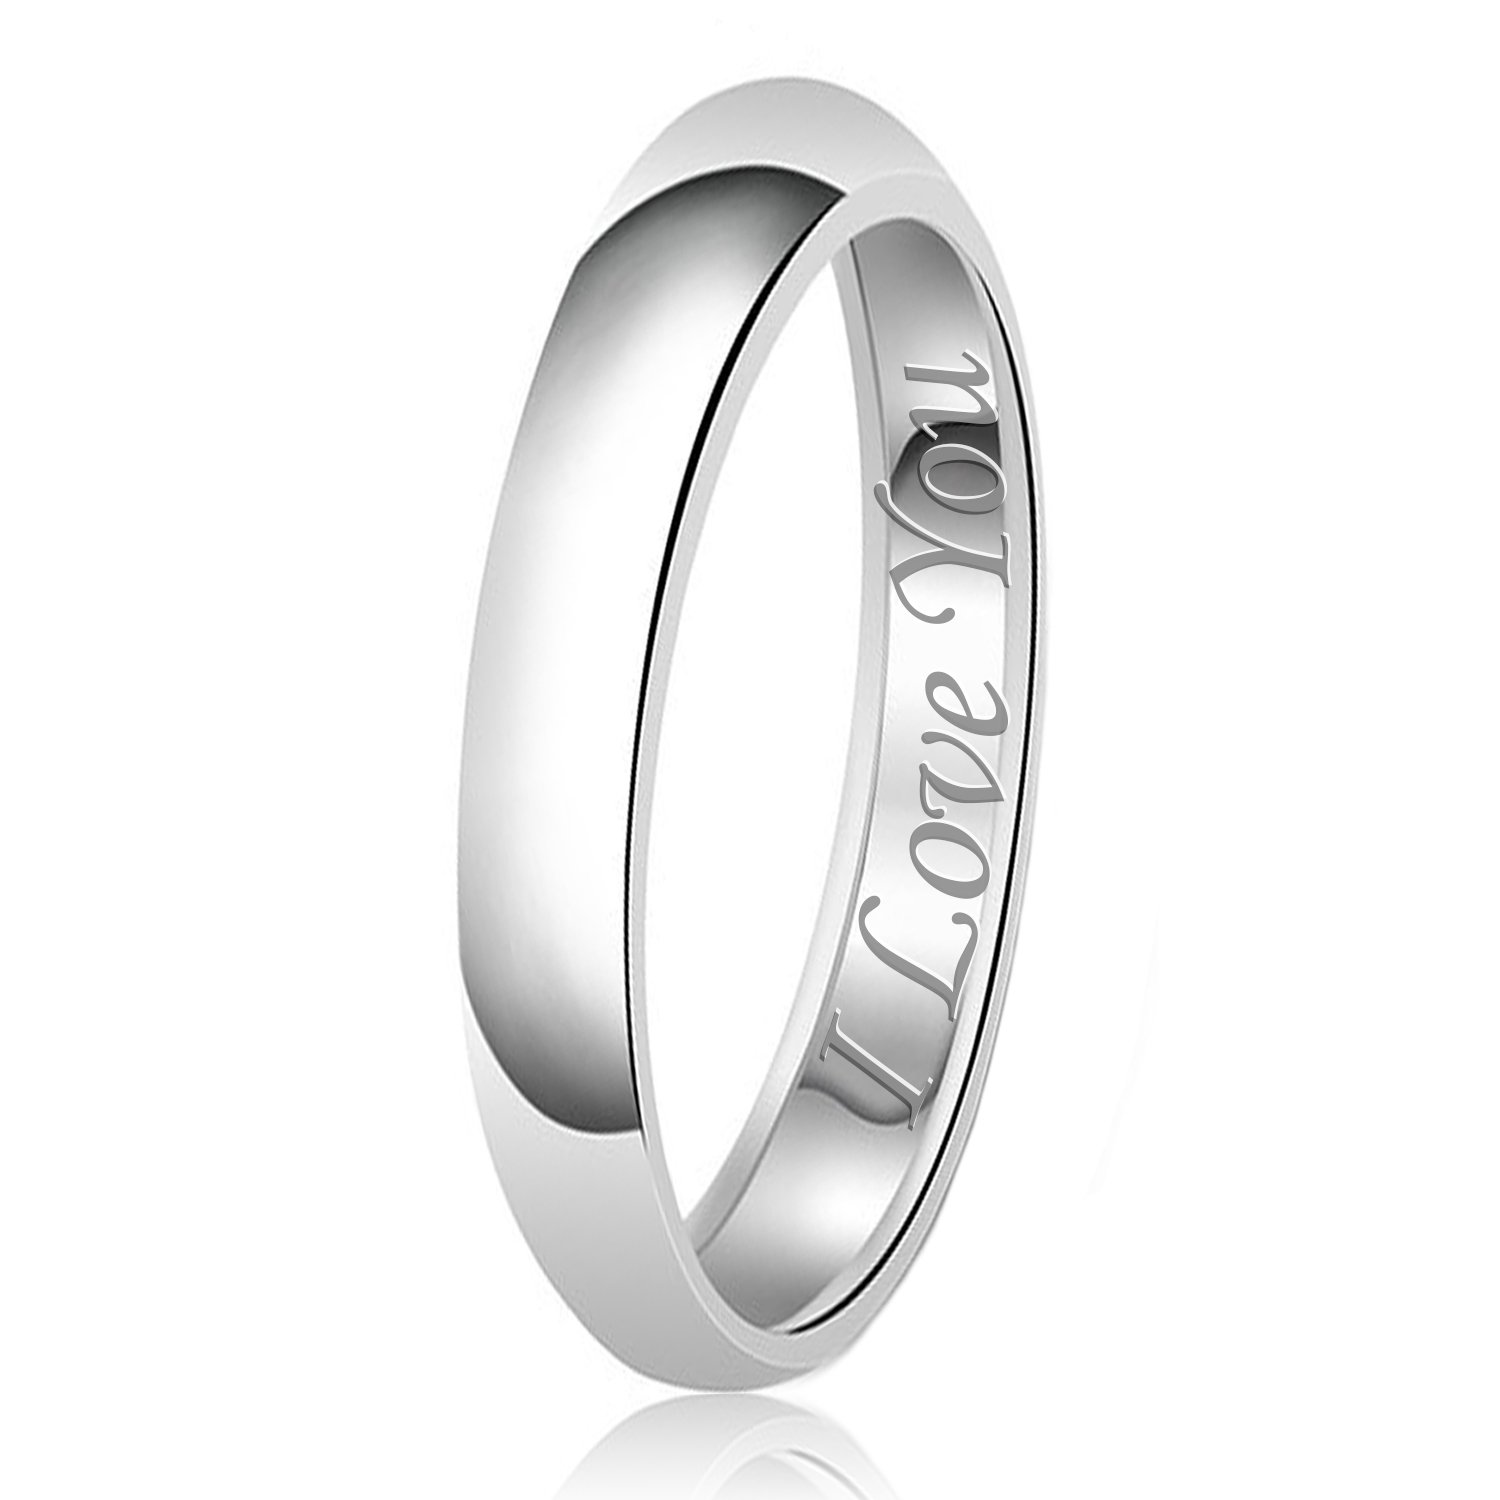 3mm I Love You Engraved Classic Sterling Silver Plain Wedding Band Ring, Size 7.5